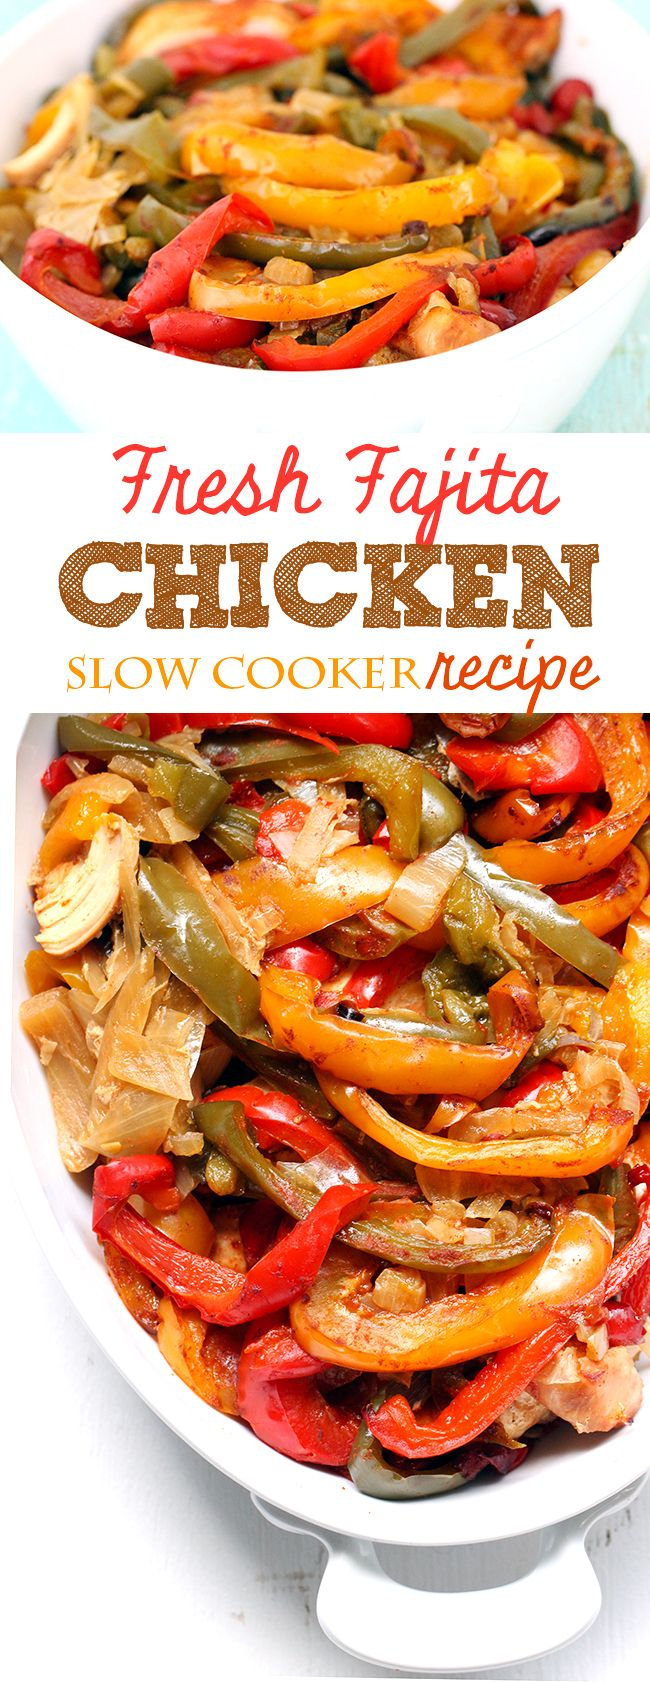 We've been trying to eat more veggies around here, as I mentioned last week. Since my slow cooker is the go-to dinner maker around here, I've been trying to come up with some fresh ideas. Fajita Slow Cooker Chicken seemed like a winner as it's packed with loads of peppers and onions. To give it a fun fresh look for the season, I used three different colored peppers. The beauty is that you can use whichever peppers are convienint. I opted for green, red and orange. Came in a afford...